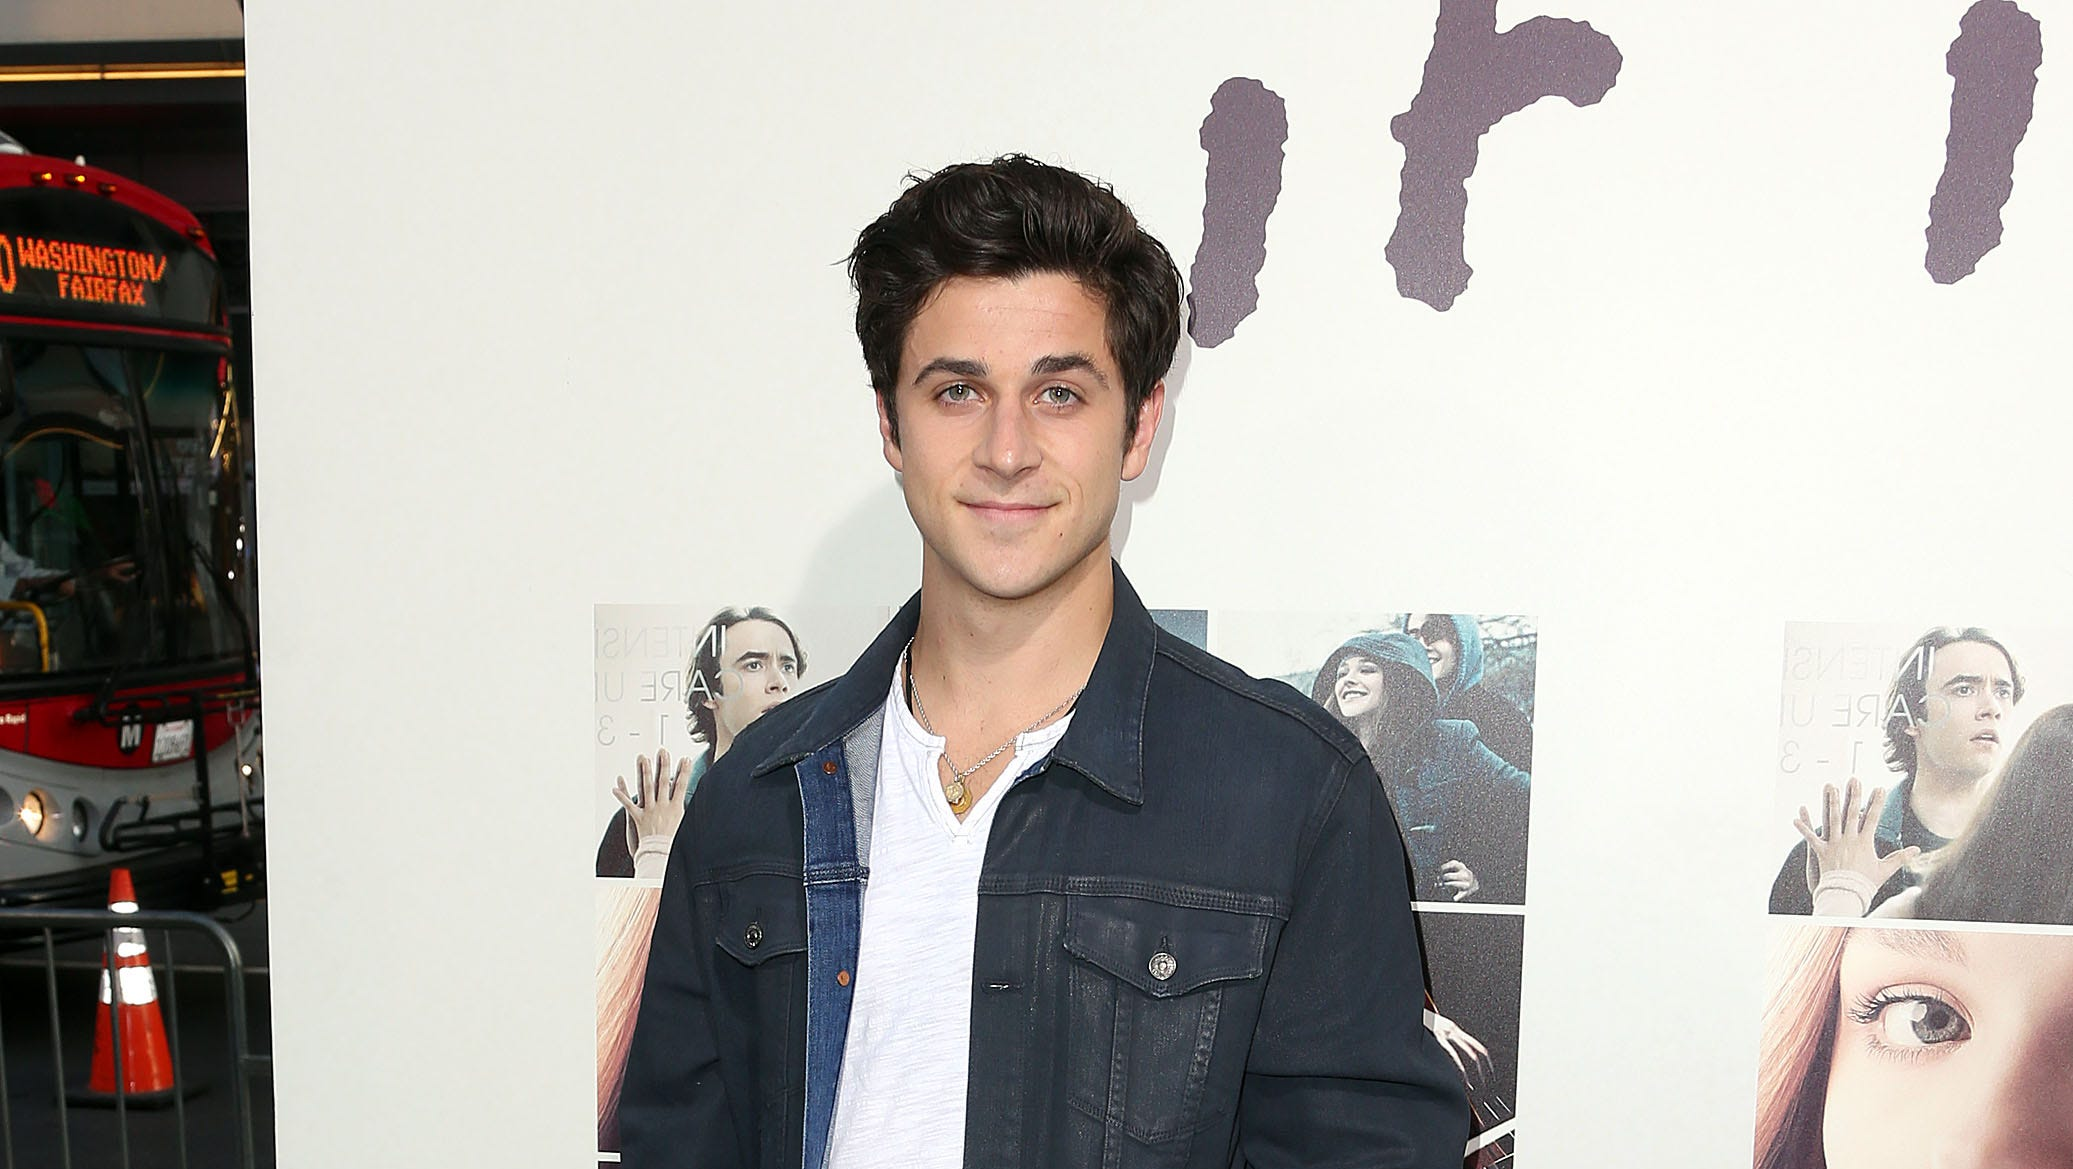 "HOLLYWOOD, CA - AUGUST 20: Actor David Henrie attends the Premiere of New Line Cinema's and Metro-Goldwyn-Mayer Pictures' ""If I Stay"" at the TCL Chinese Theatre on August 20, 2014 in Hollywood, California.  (Photo by Frederick M. Brown/Getty Images) ORG XMIT: 508118659 ORIG FILE ID: 453895010"